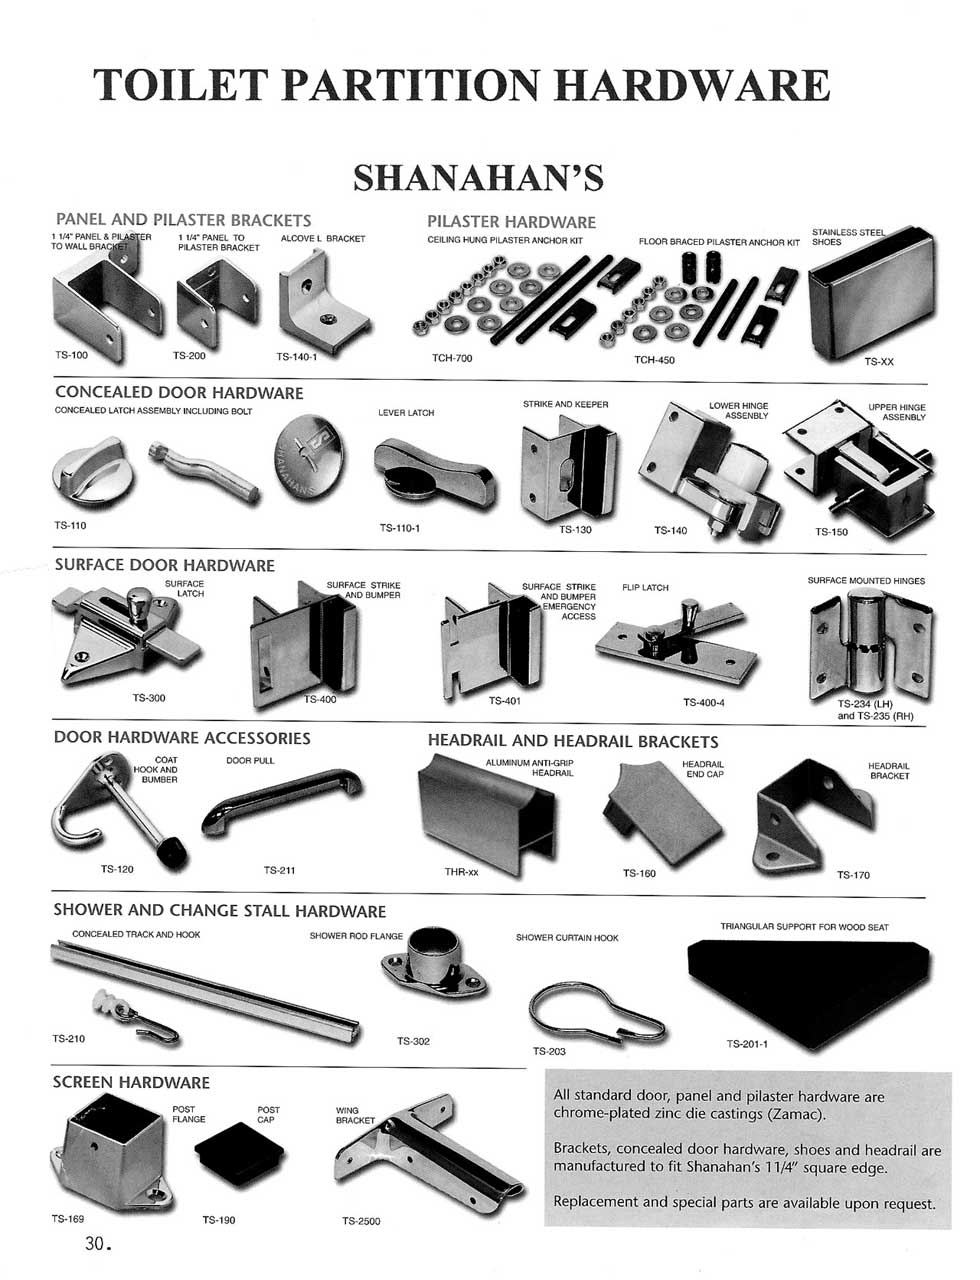 Shanahan's | Toilet Partition Hardware from Wielhouwer ...